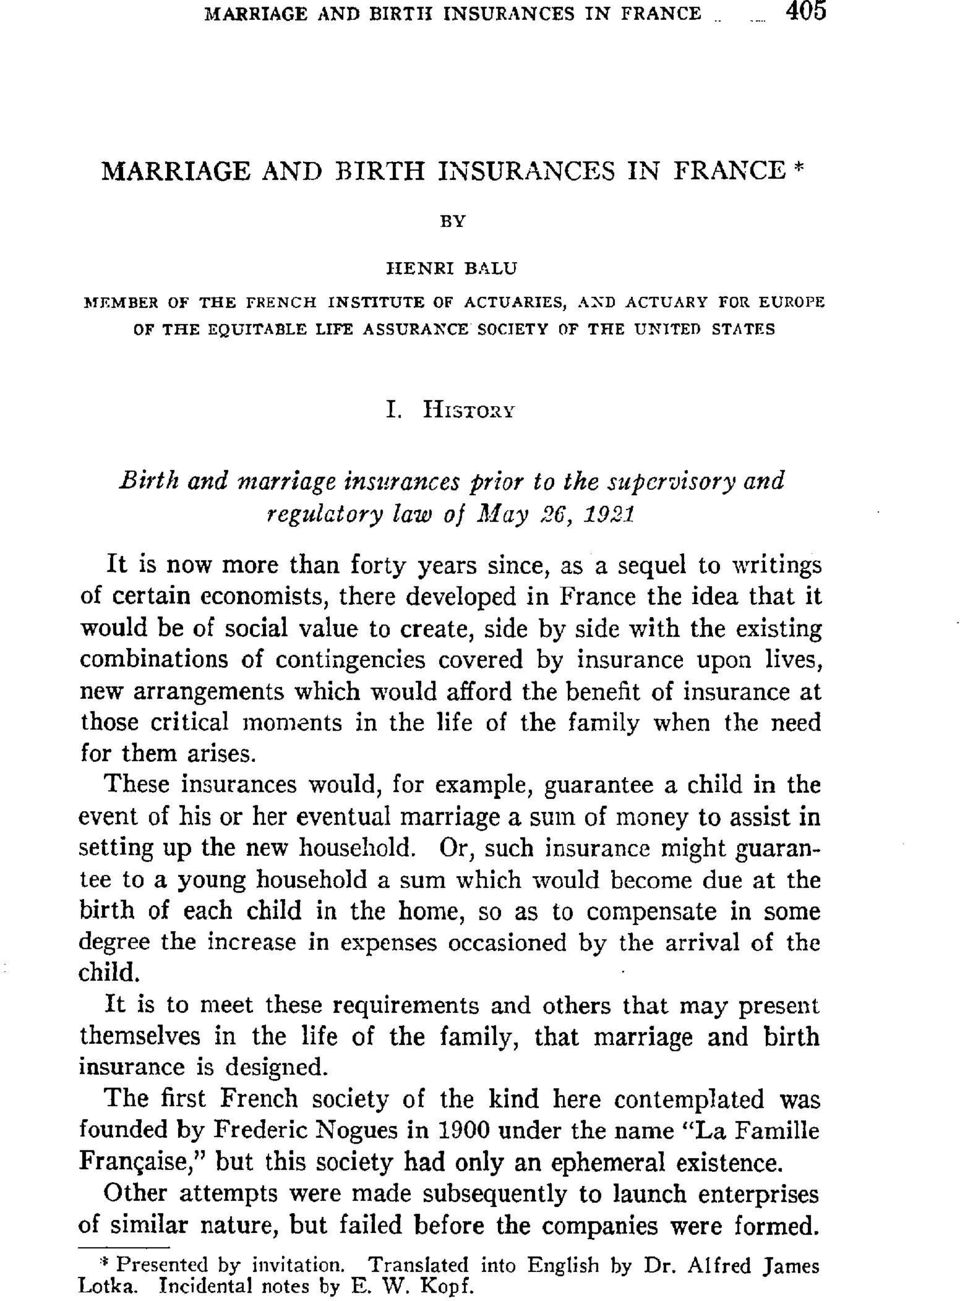 IIIsTomv Birth and marriage insurances prior to the supervisory and regulatory law o] May 26, 1921 It is now more than forty years since, as a sequel to writings of certain economists, there